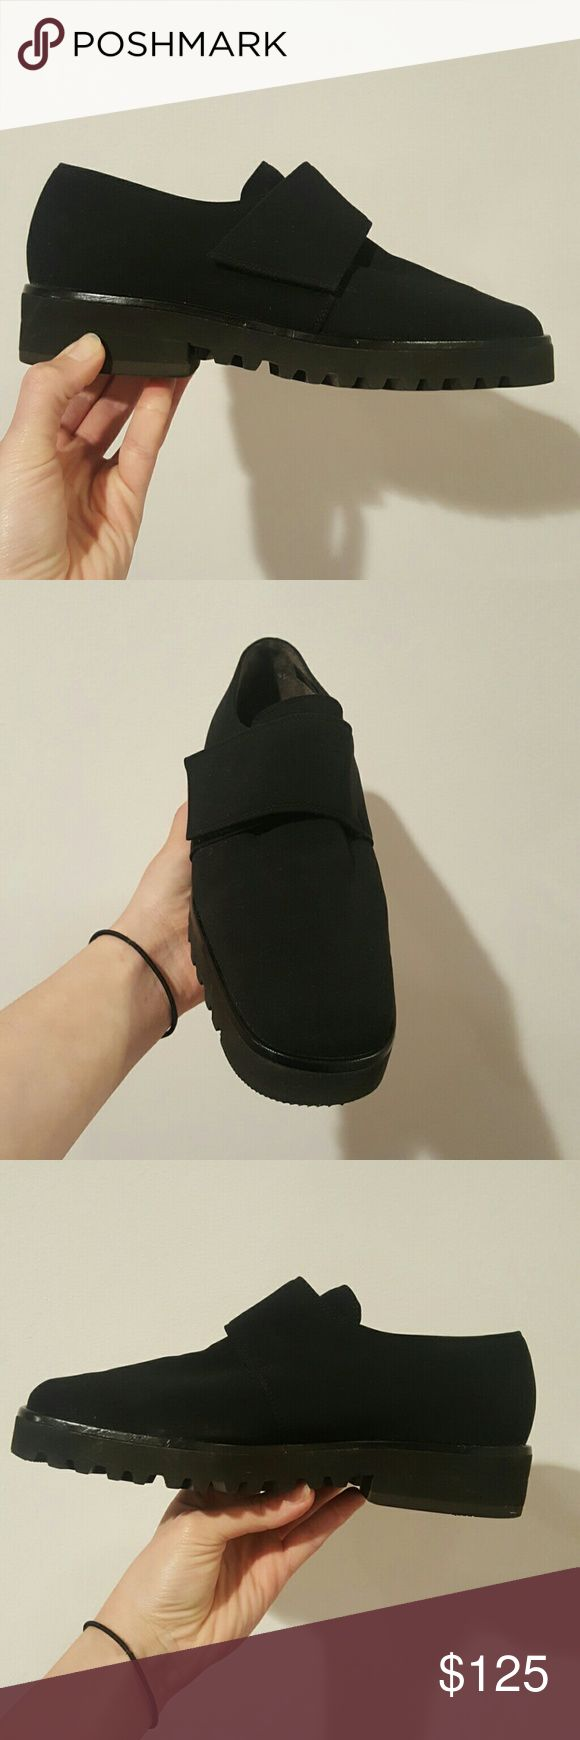 Paul Green 4.5 BLACK LOAFER SHOES PAUL GREEN SIZE 4.5 MADE IN GERMANY BLACK FABRIC Paul Green Shoes Flats & Loafers